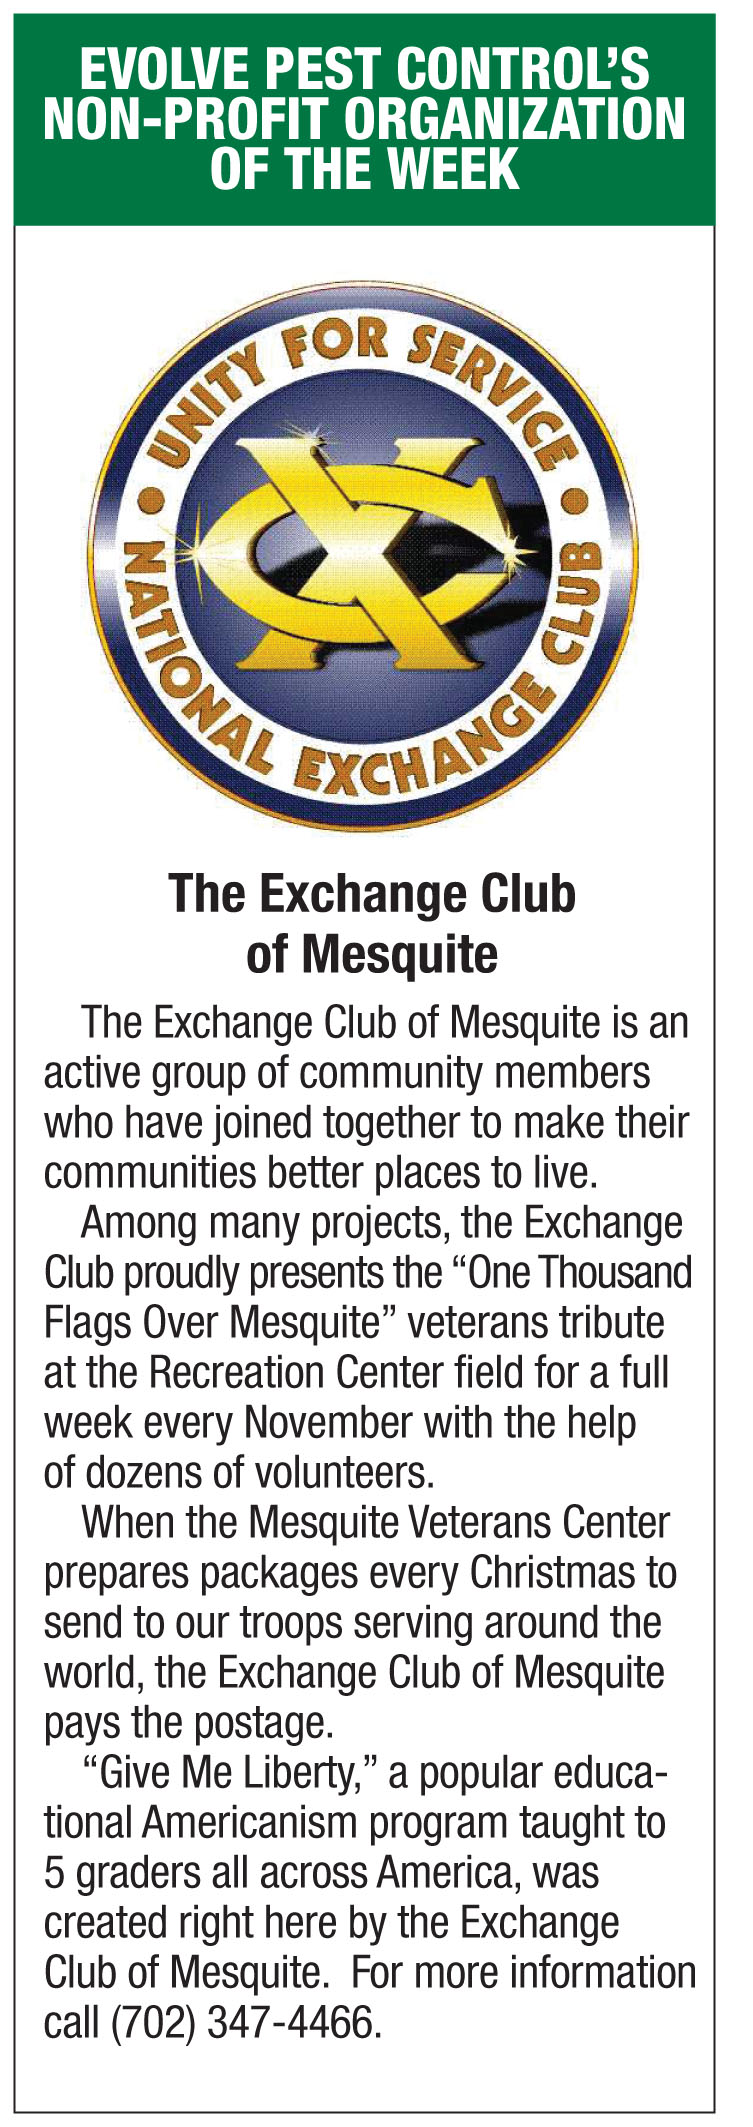 Evolve Pest Control's Non-profit of the week-Exchange Club